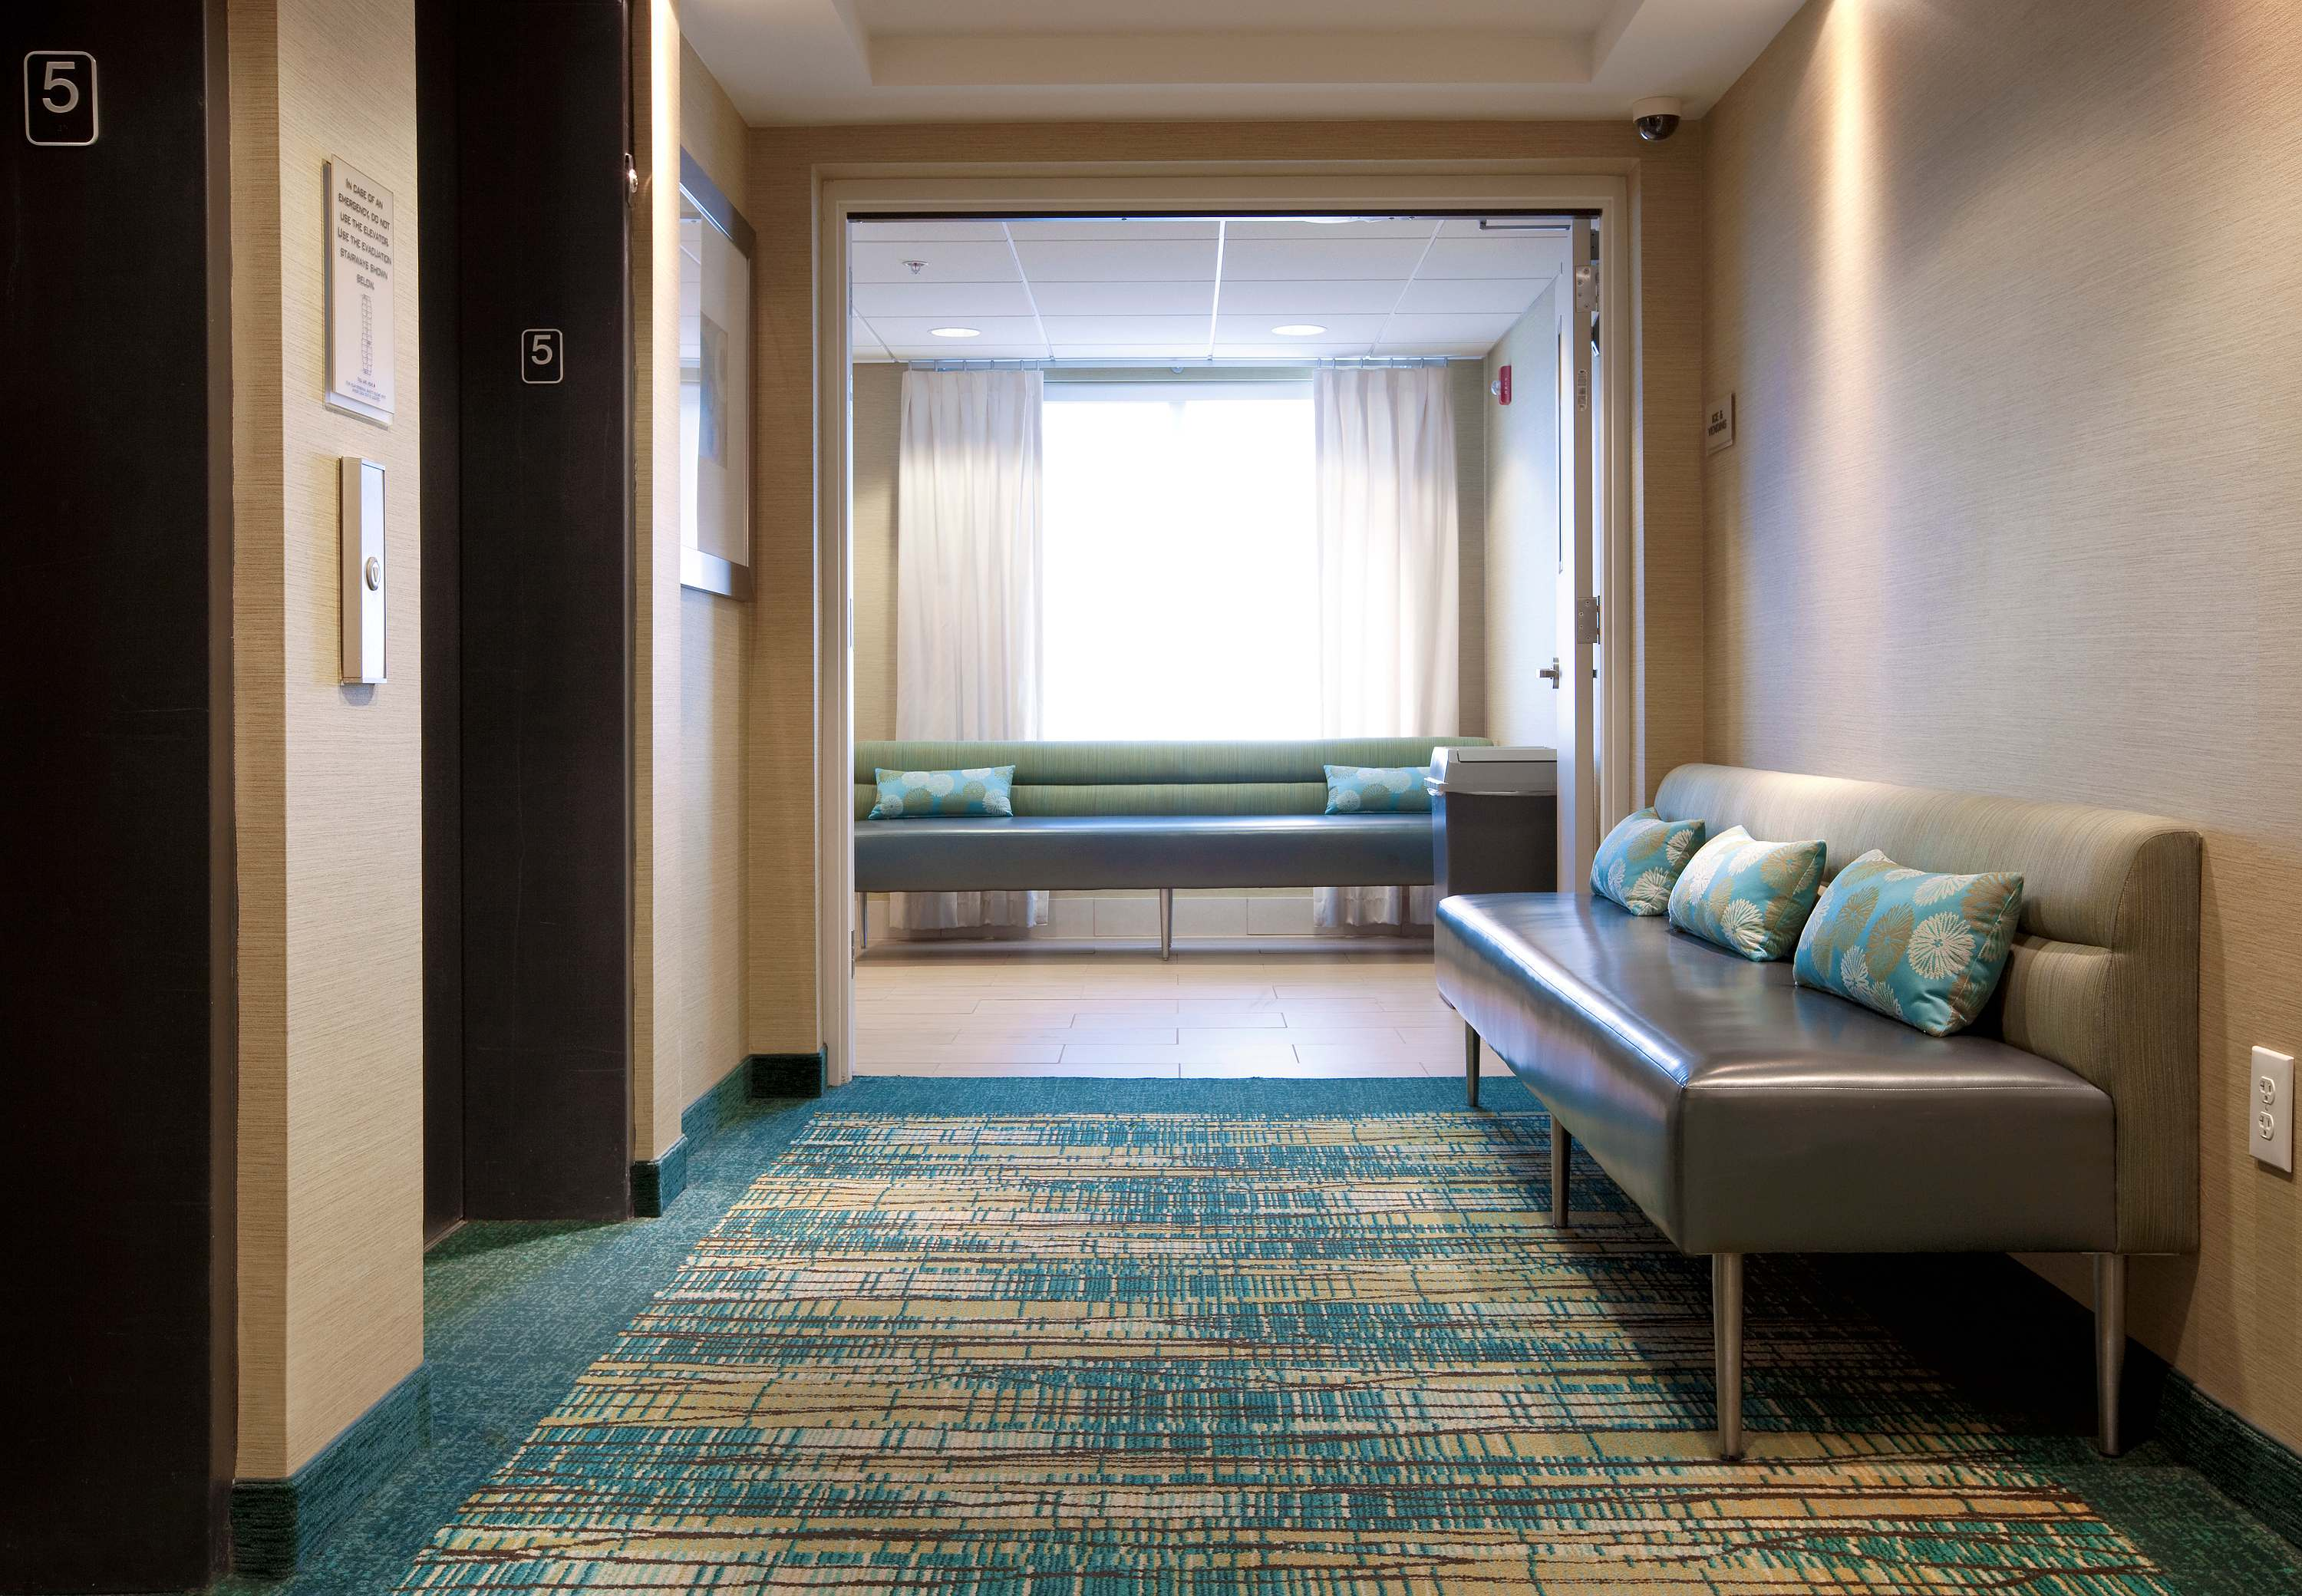 SpringHill Suites by Marriott Athens West image 7